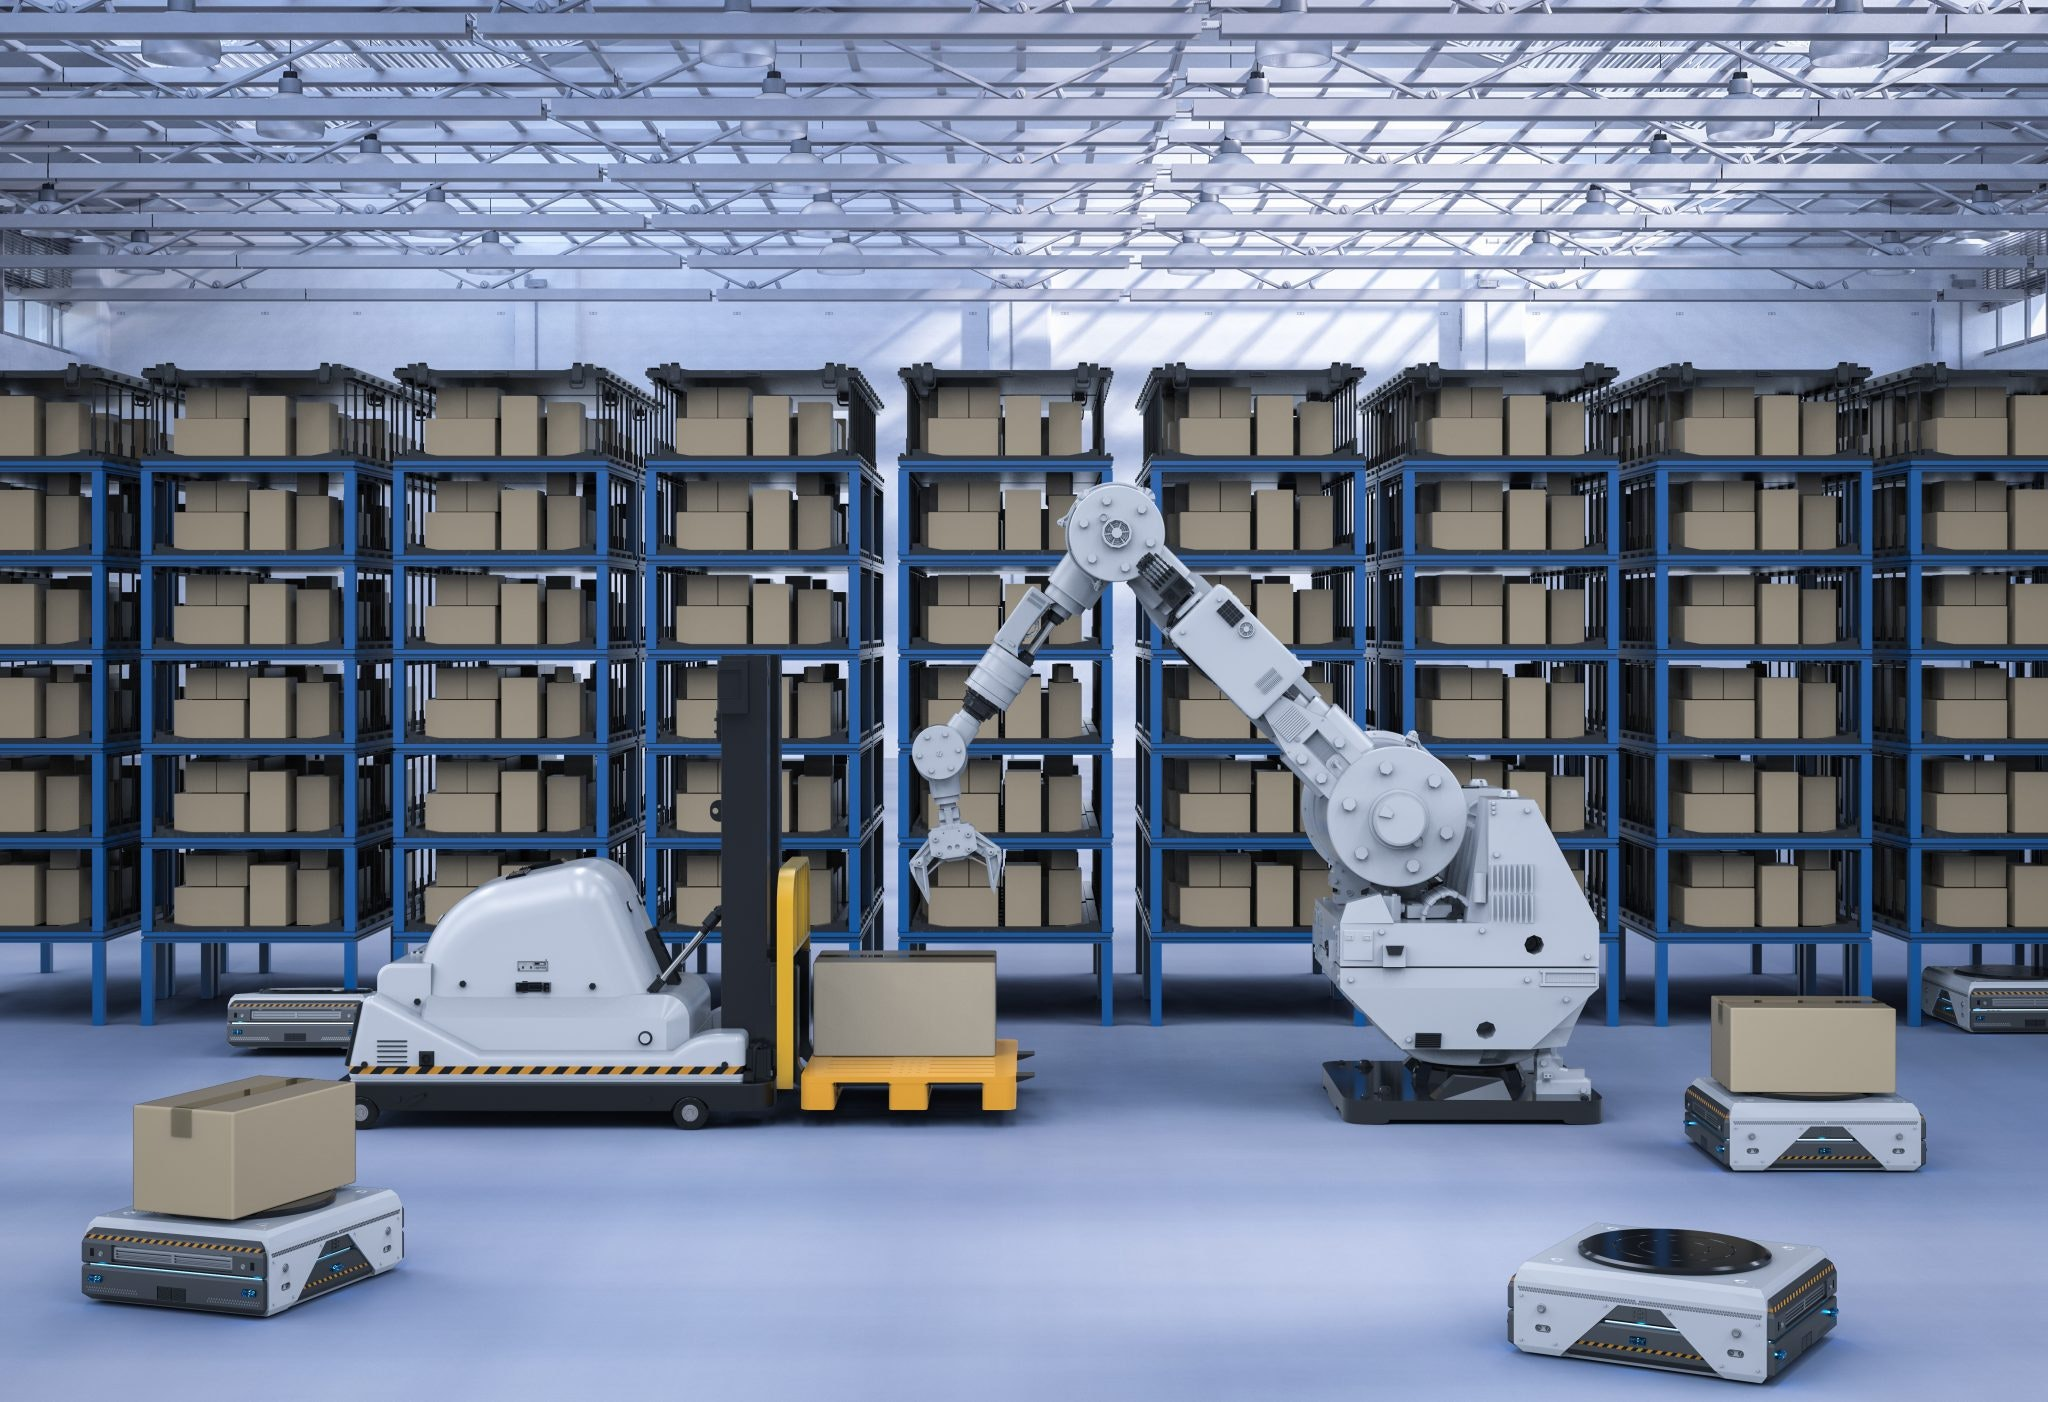 Seyo says it's found the way to bring robots to every warehouse